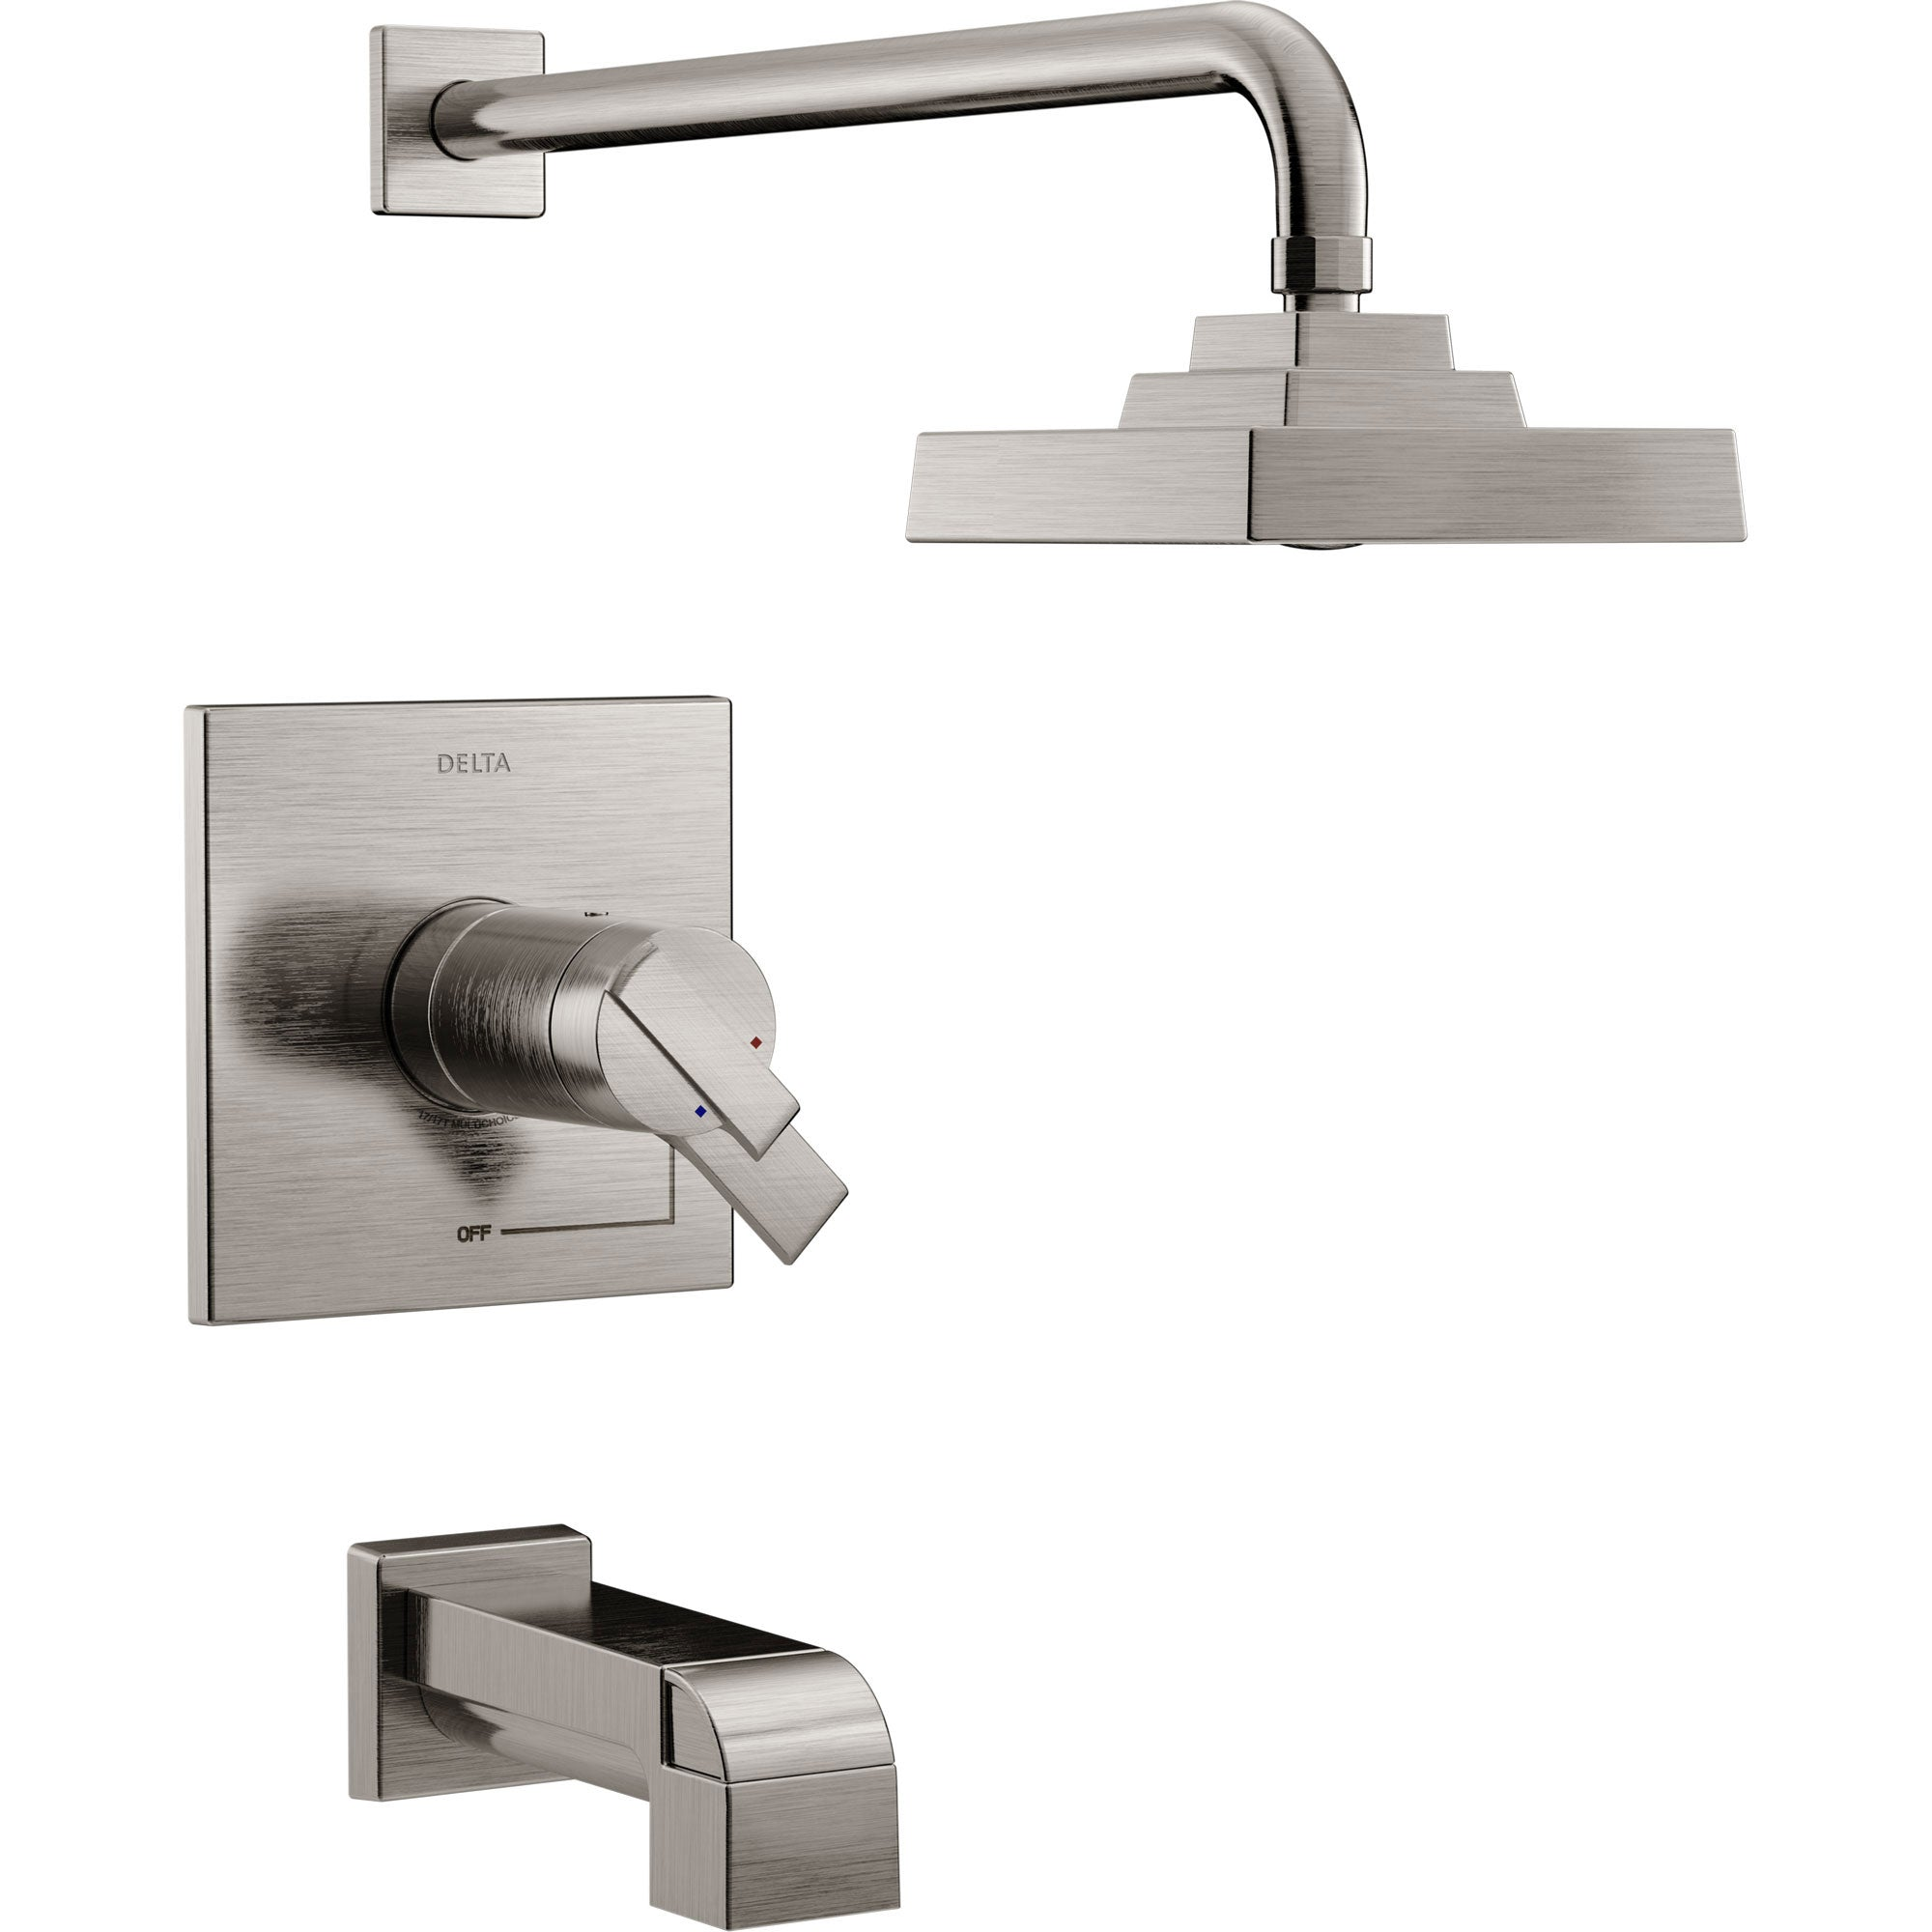 Delta Ara Modern Stainless Steel Finish TempAssure 17T Tub and Shower Combination Faucet with Dual Temperature and Pressure Control INCLUDES Rough-in Valve with Stops D1101V